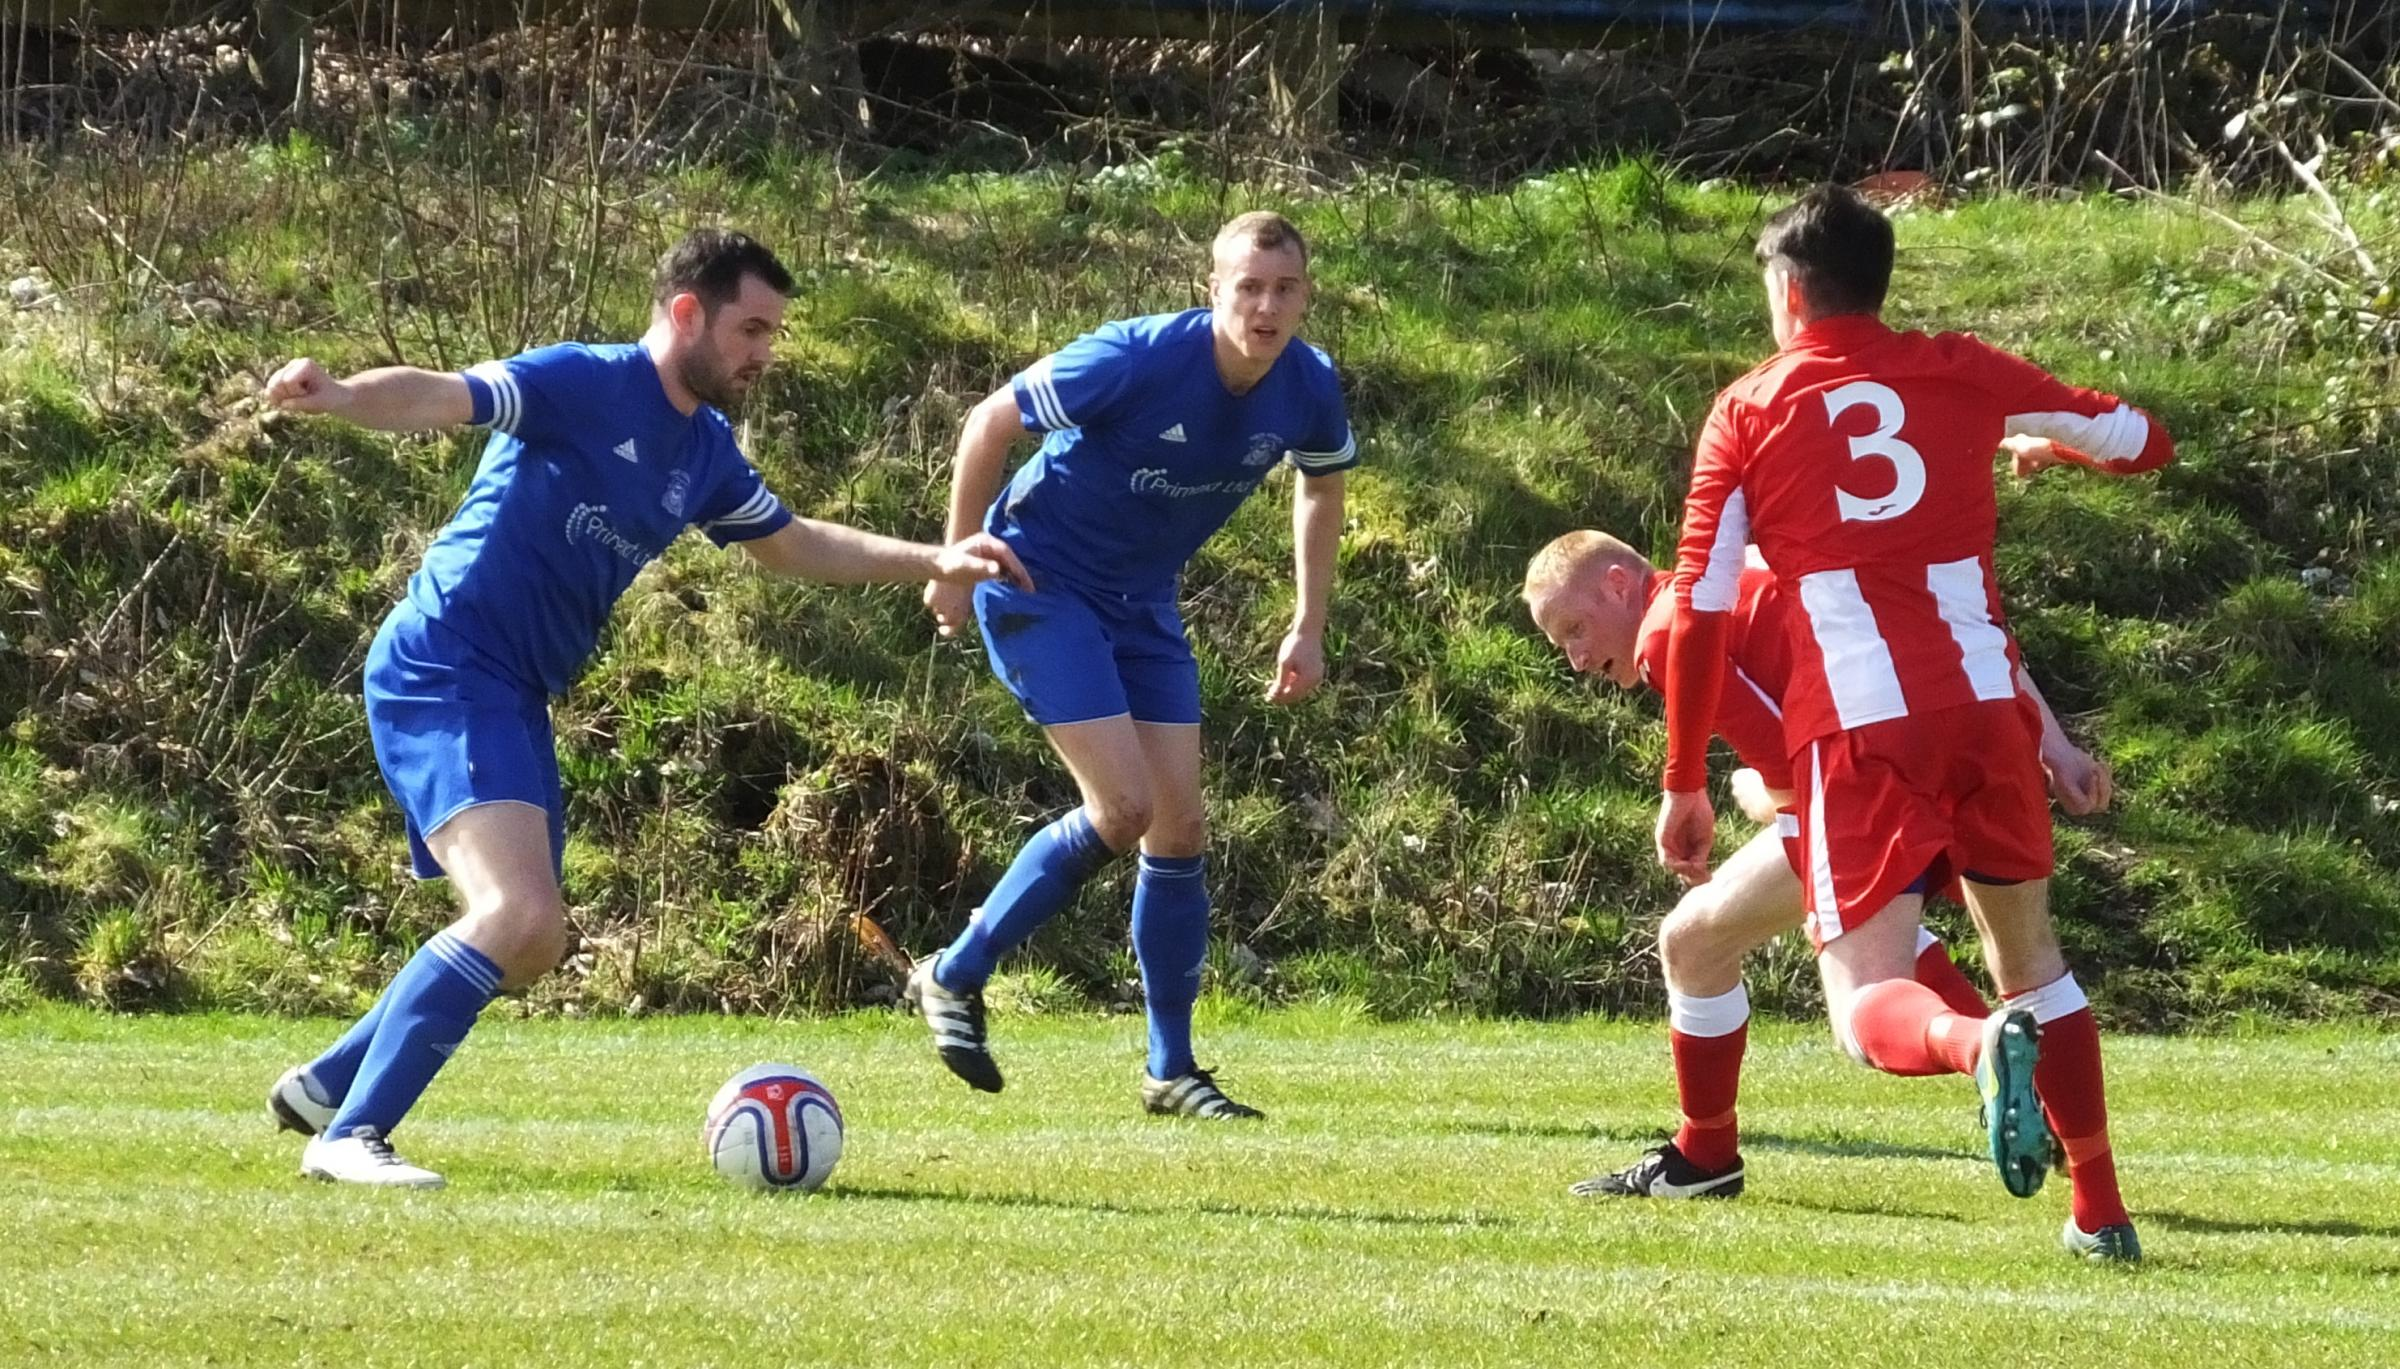 Yoker Athletic Made To Pay For Mistakes By Clinical Renfrew From